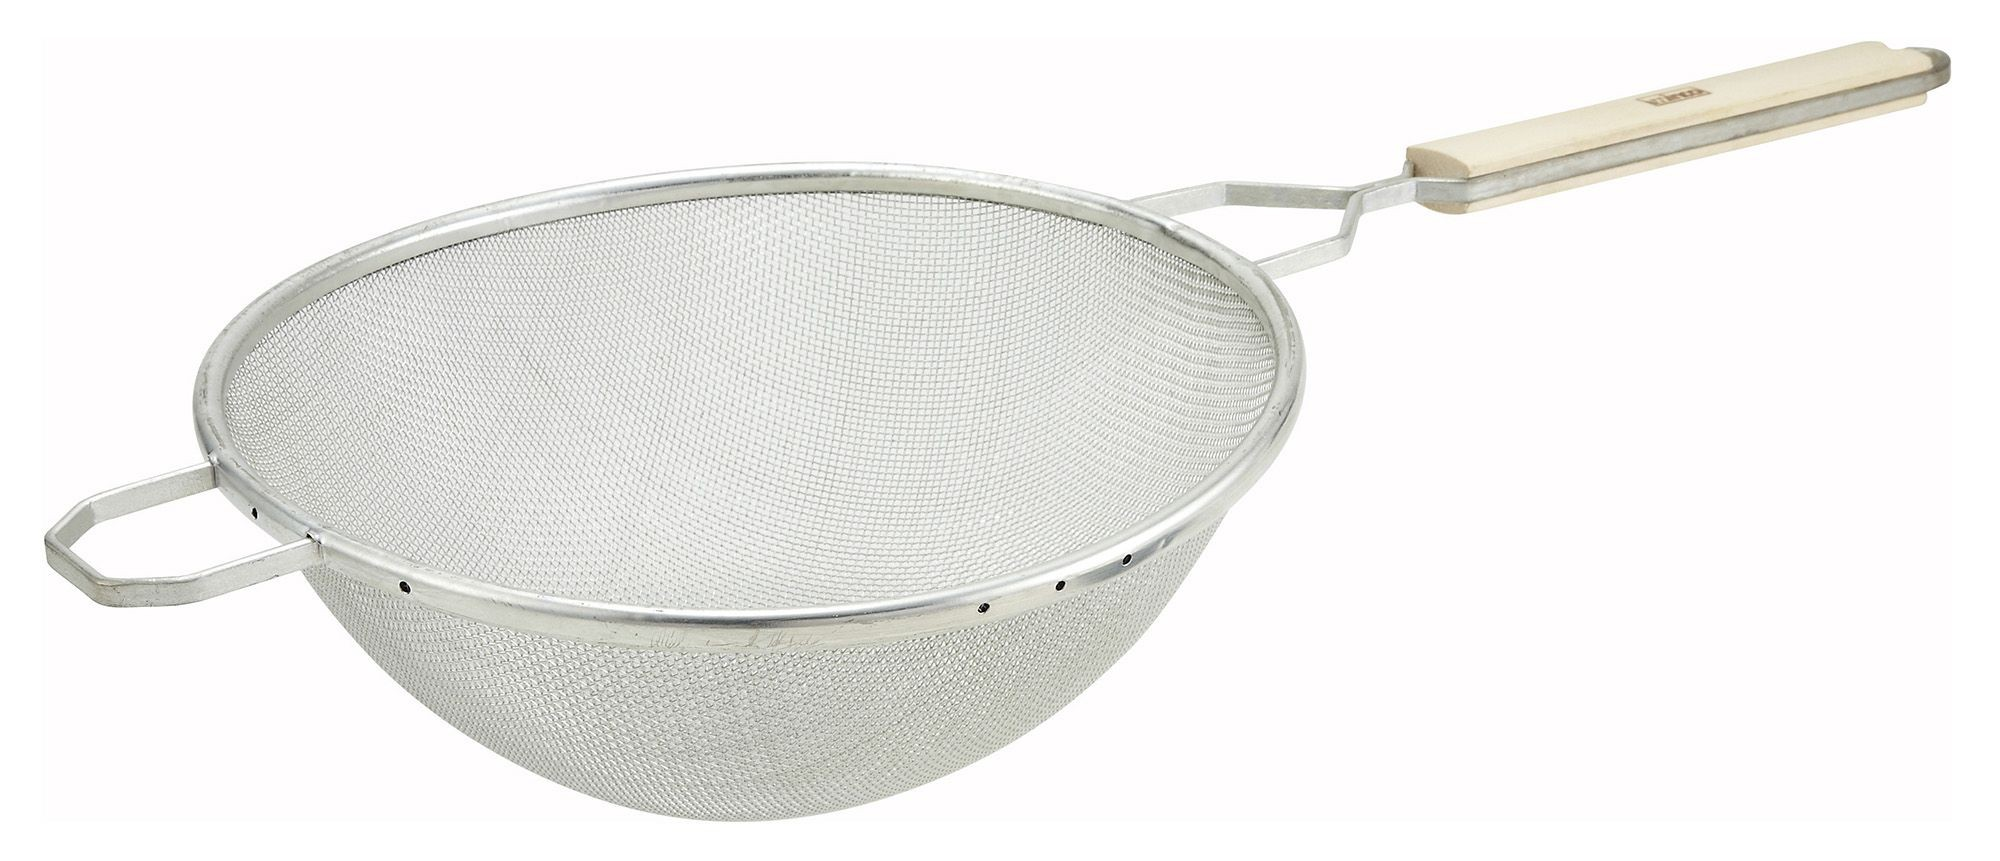 Winco mst-10s Single Mesh Medium Strainer with Wood Handle 10-1/4""